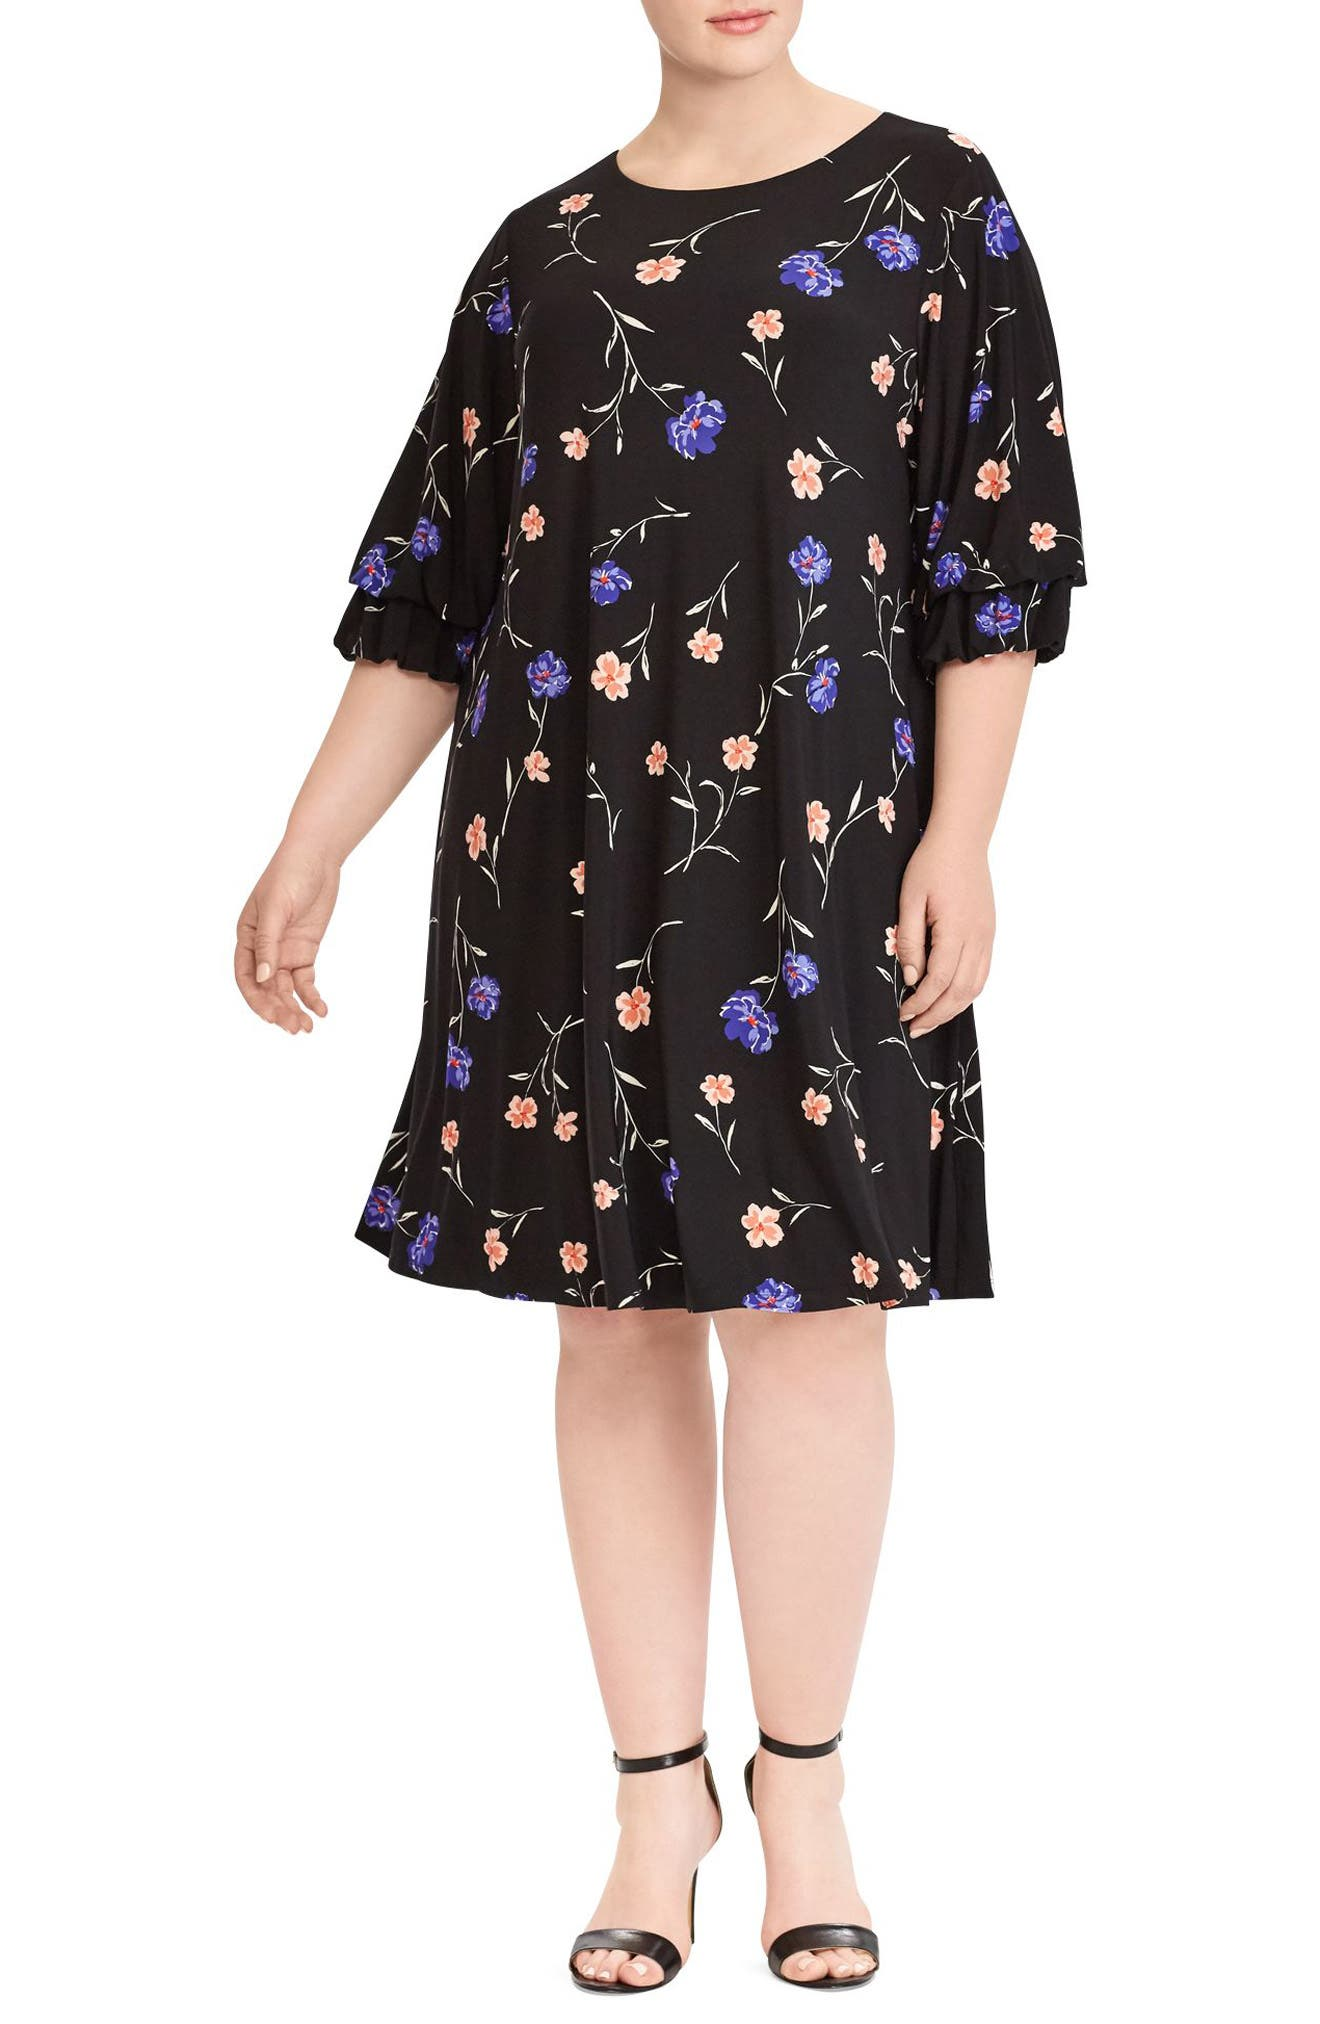 Ruffle Sleeve Floral Print Dress,                         Main,                         color, 001